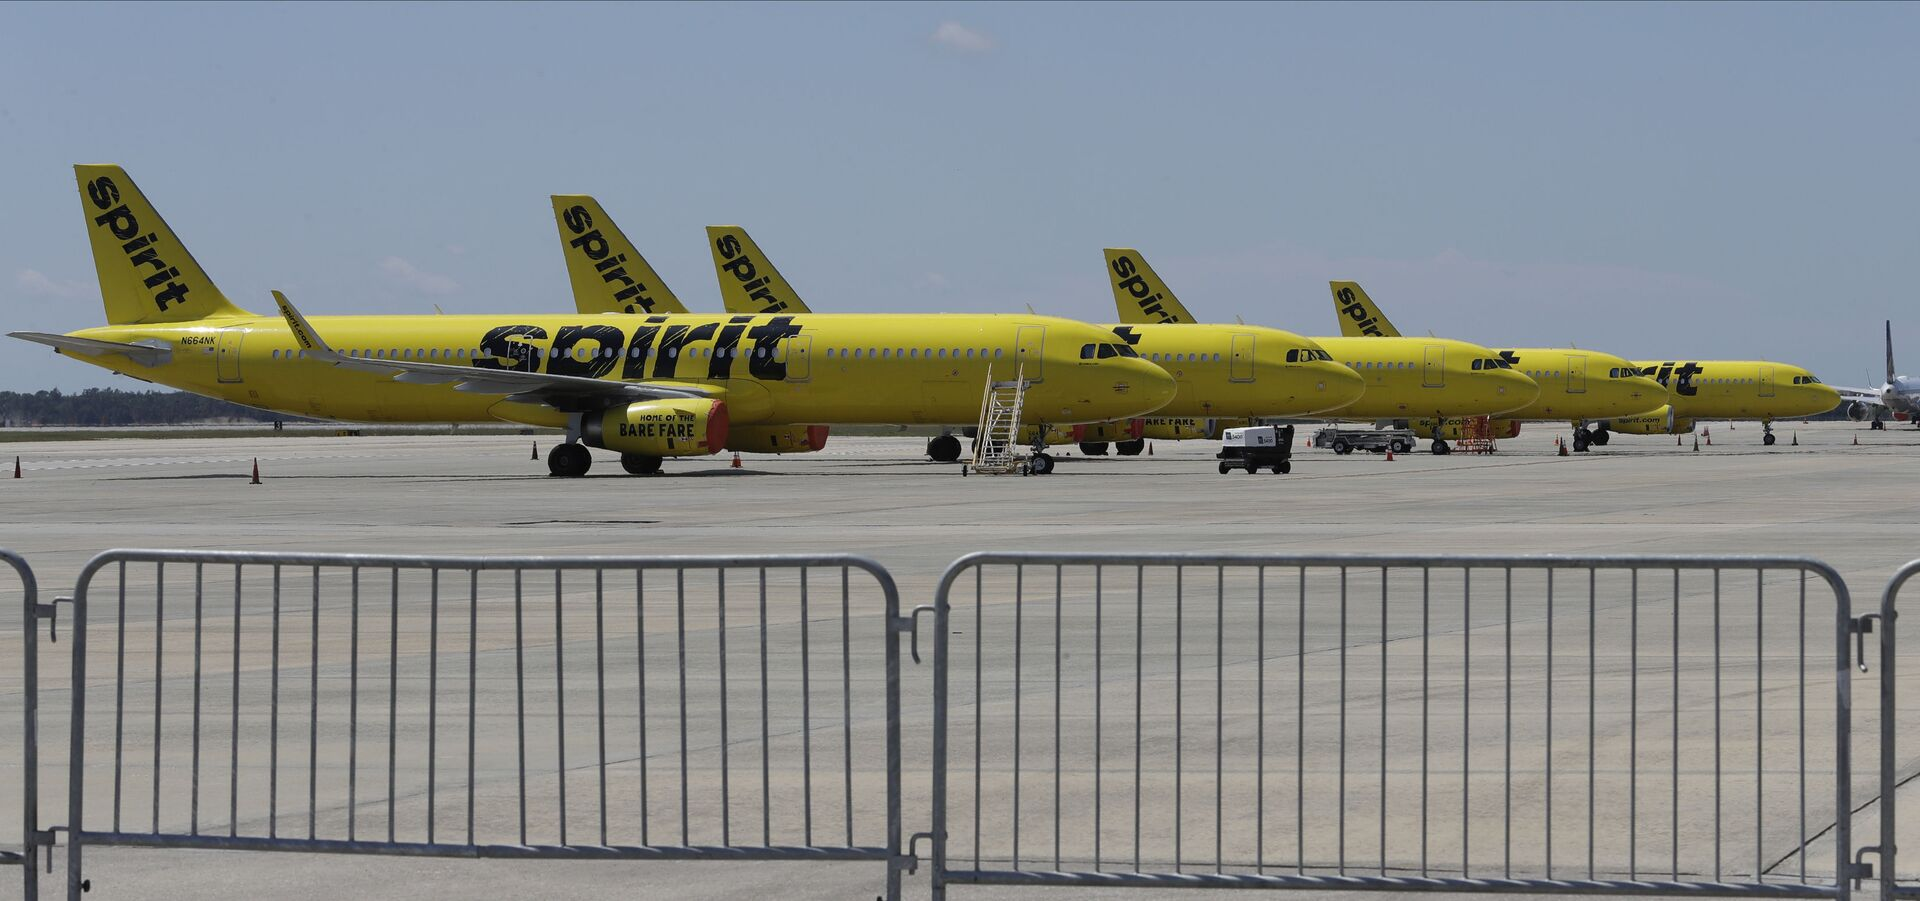 A line of Spirit Airlines jets sit on the tarmac at the Orlando International Airport Wednesday, May 20, 2020, in Orlando, Fla. Air travel is down during the coronavirus outbreak. - Sputnik International, 1920, 07.09.2021